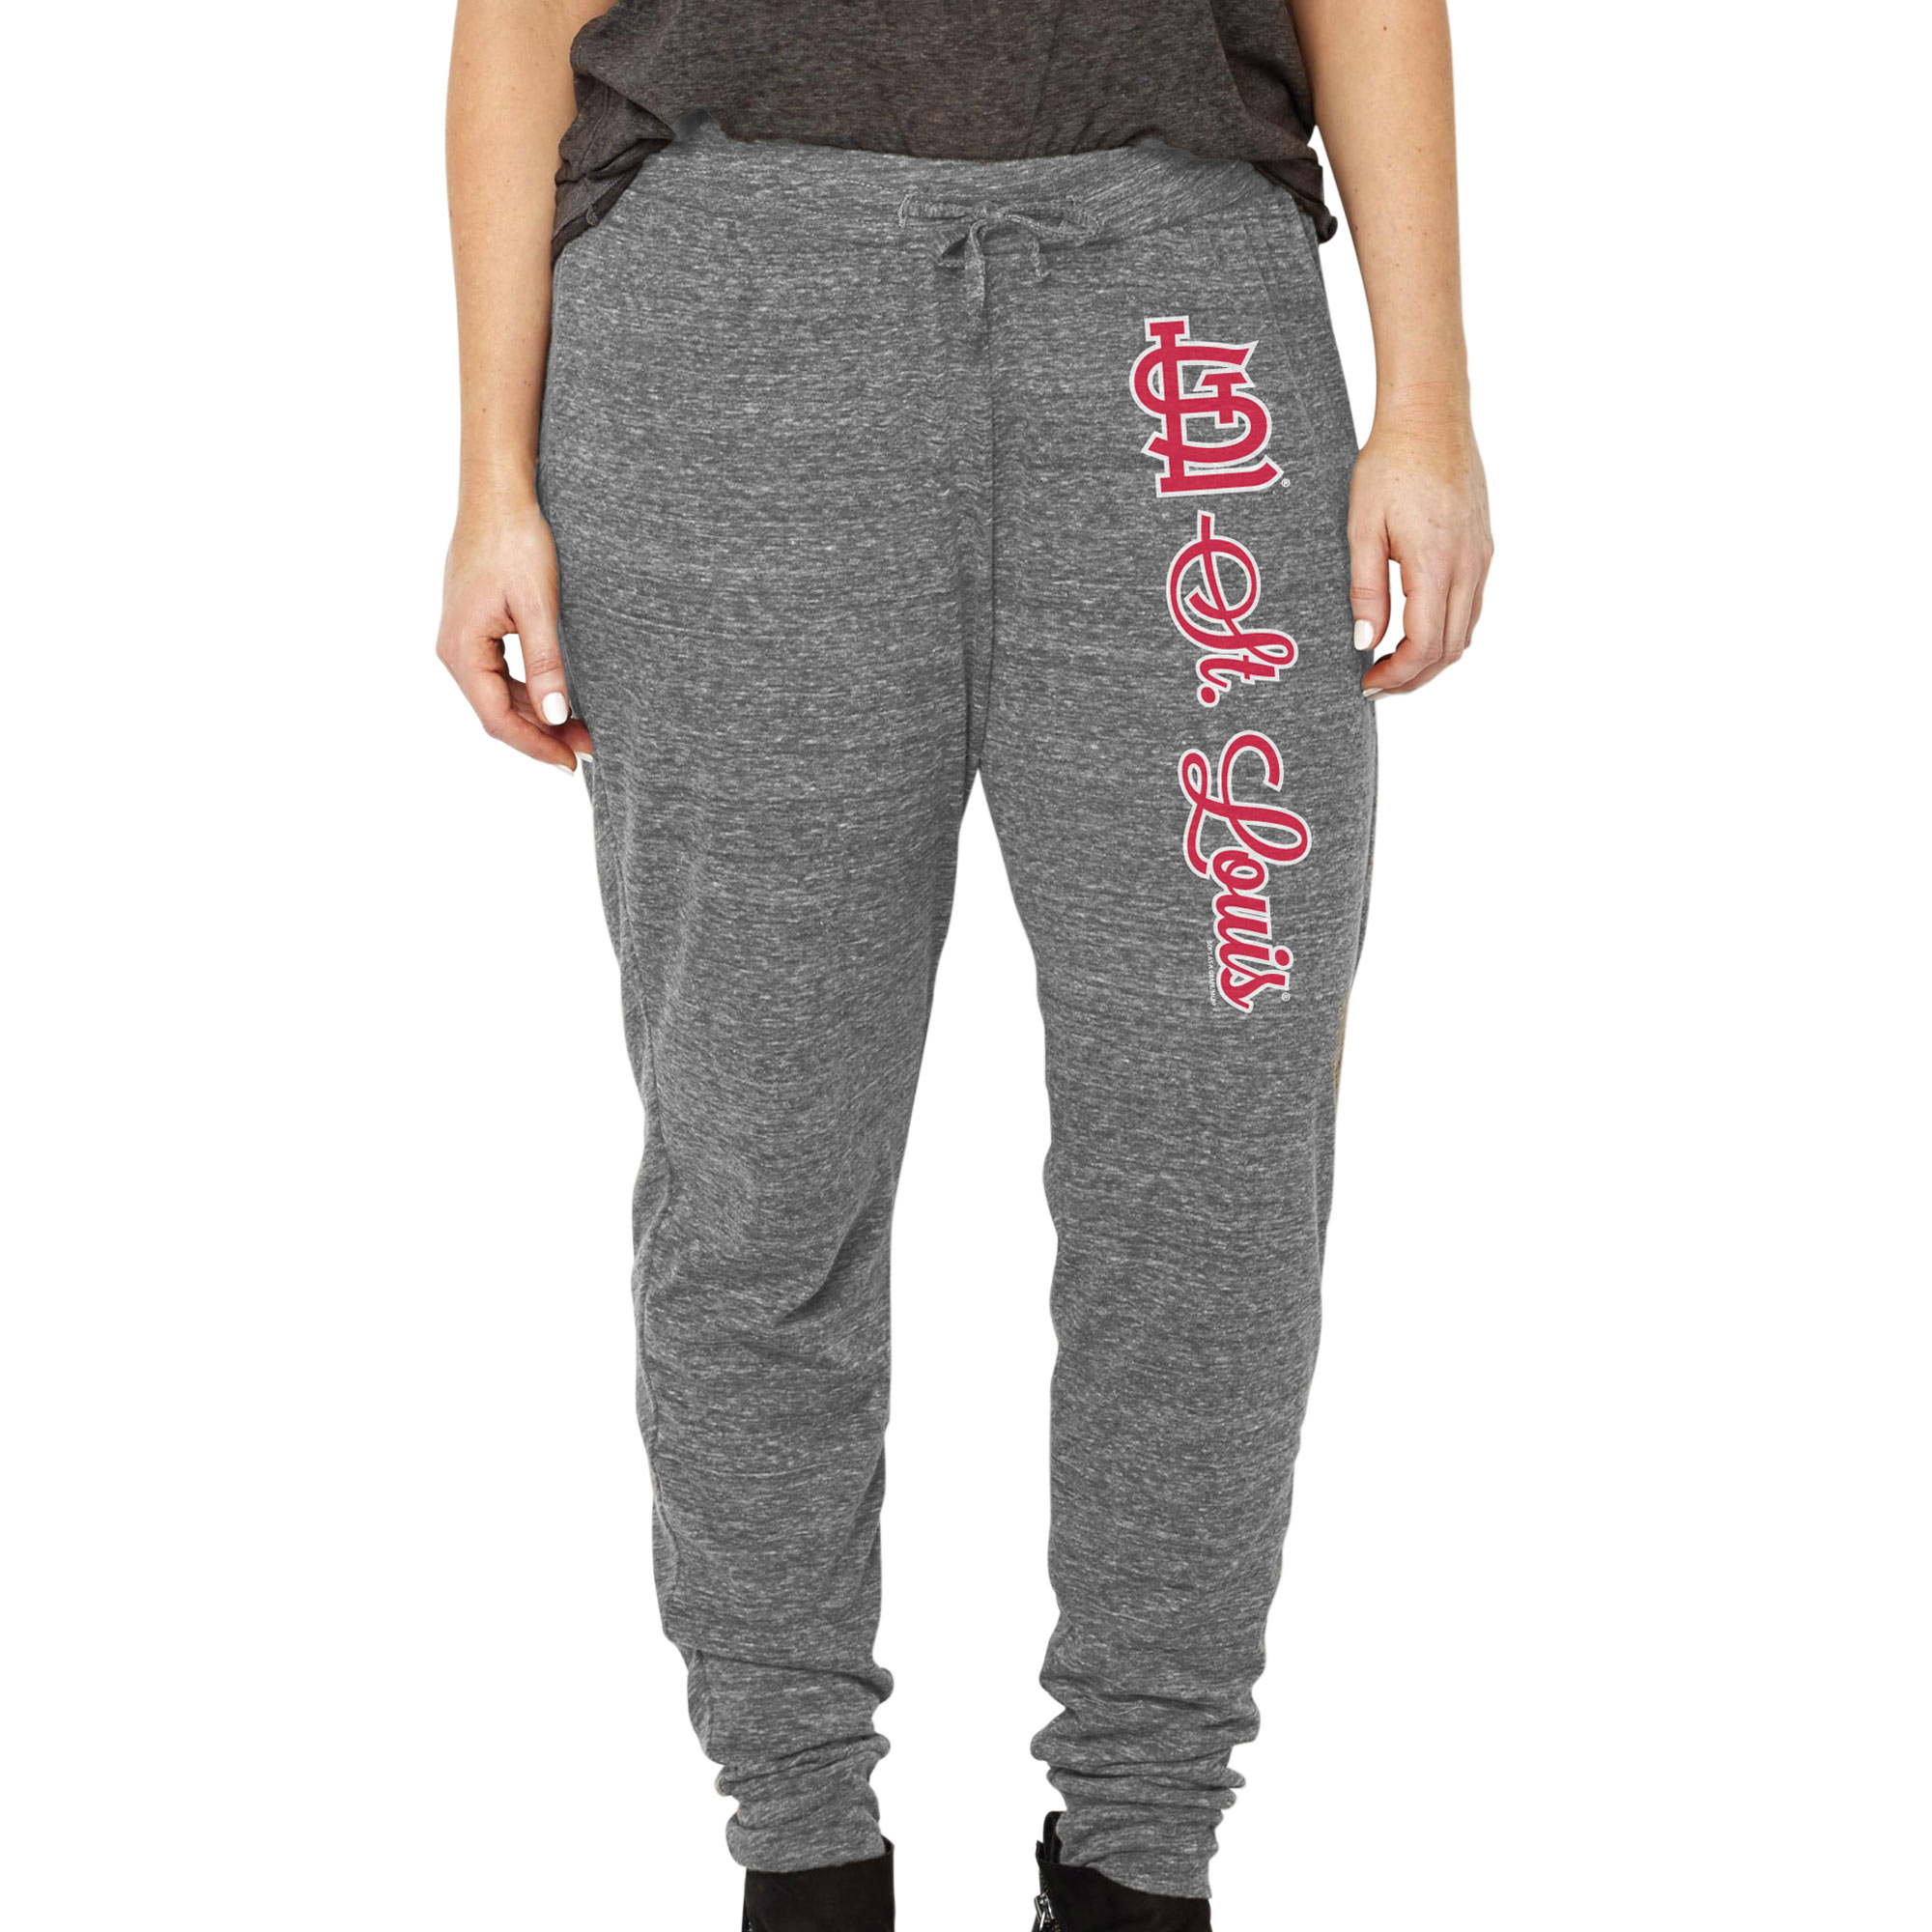 St. Louis Cardinals Soft as a Grape Women's Plus Size Jogger Pants - Heathered Gray